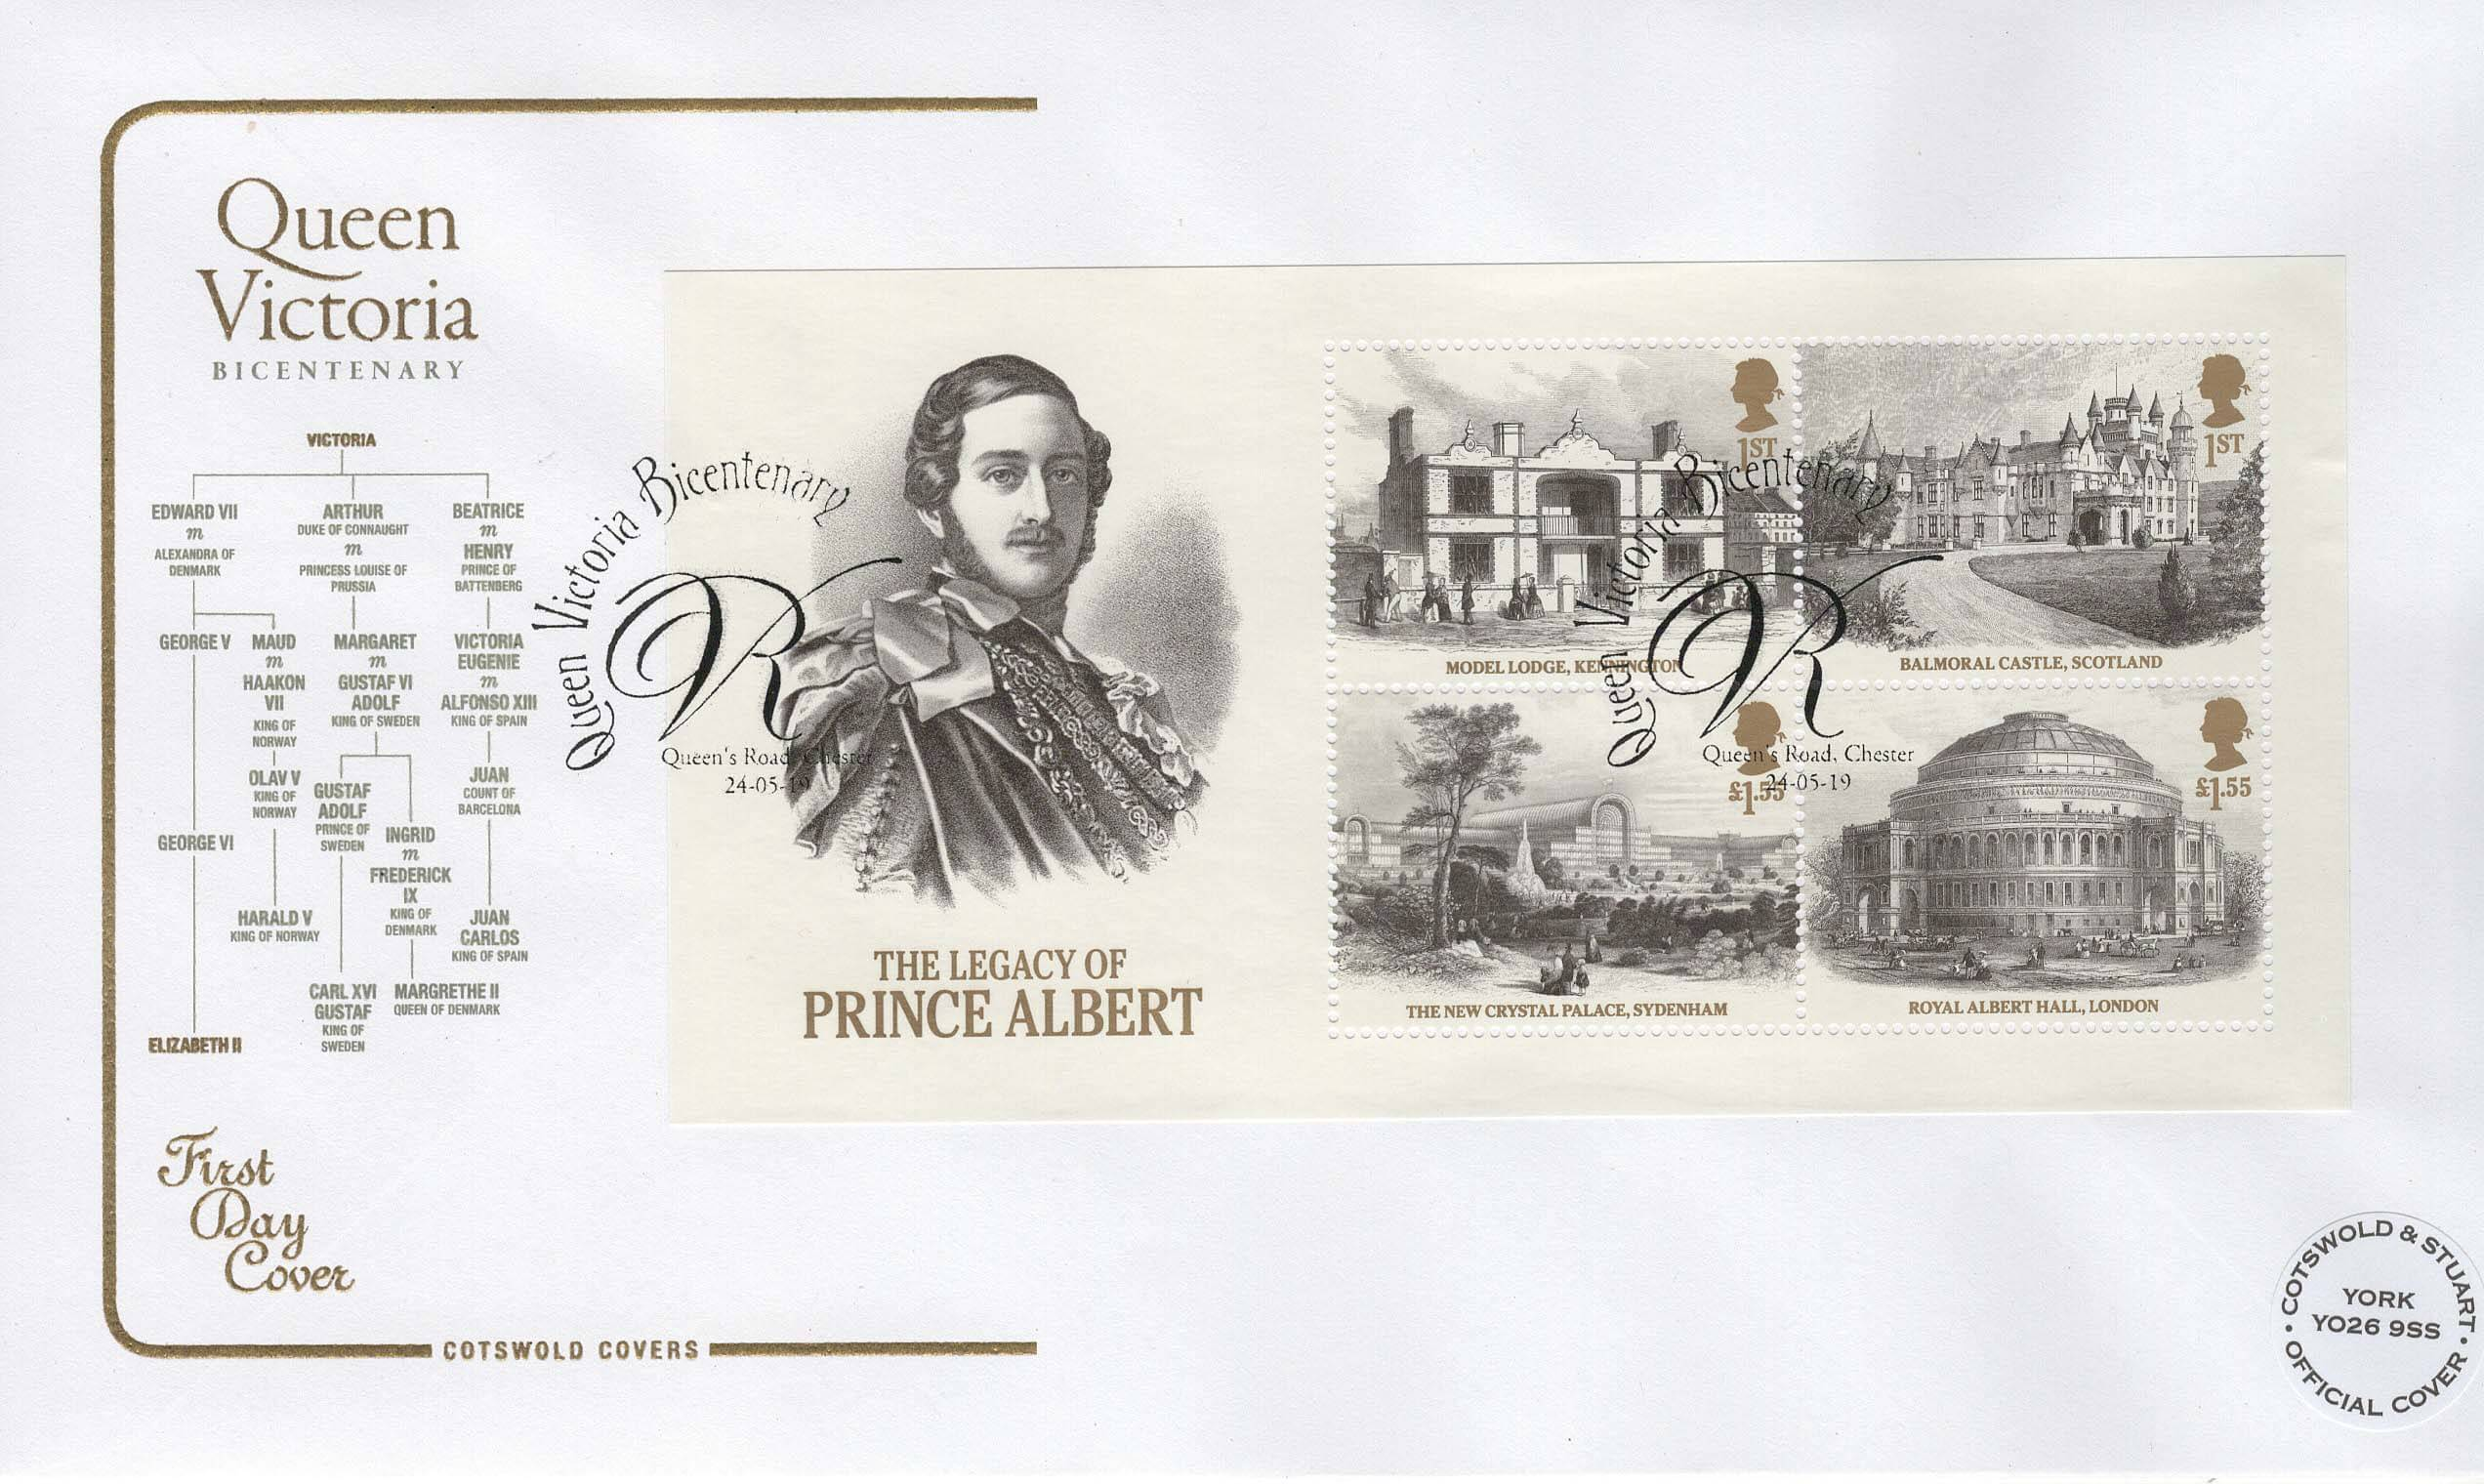 Cotswold Queen Victoria Bi-Centenary Minisheet FDC